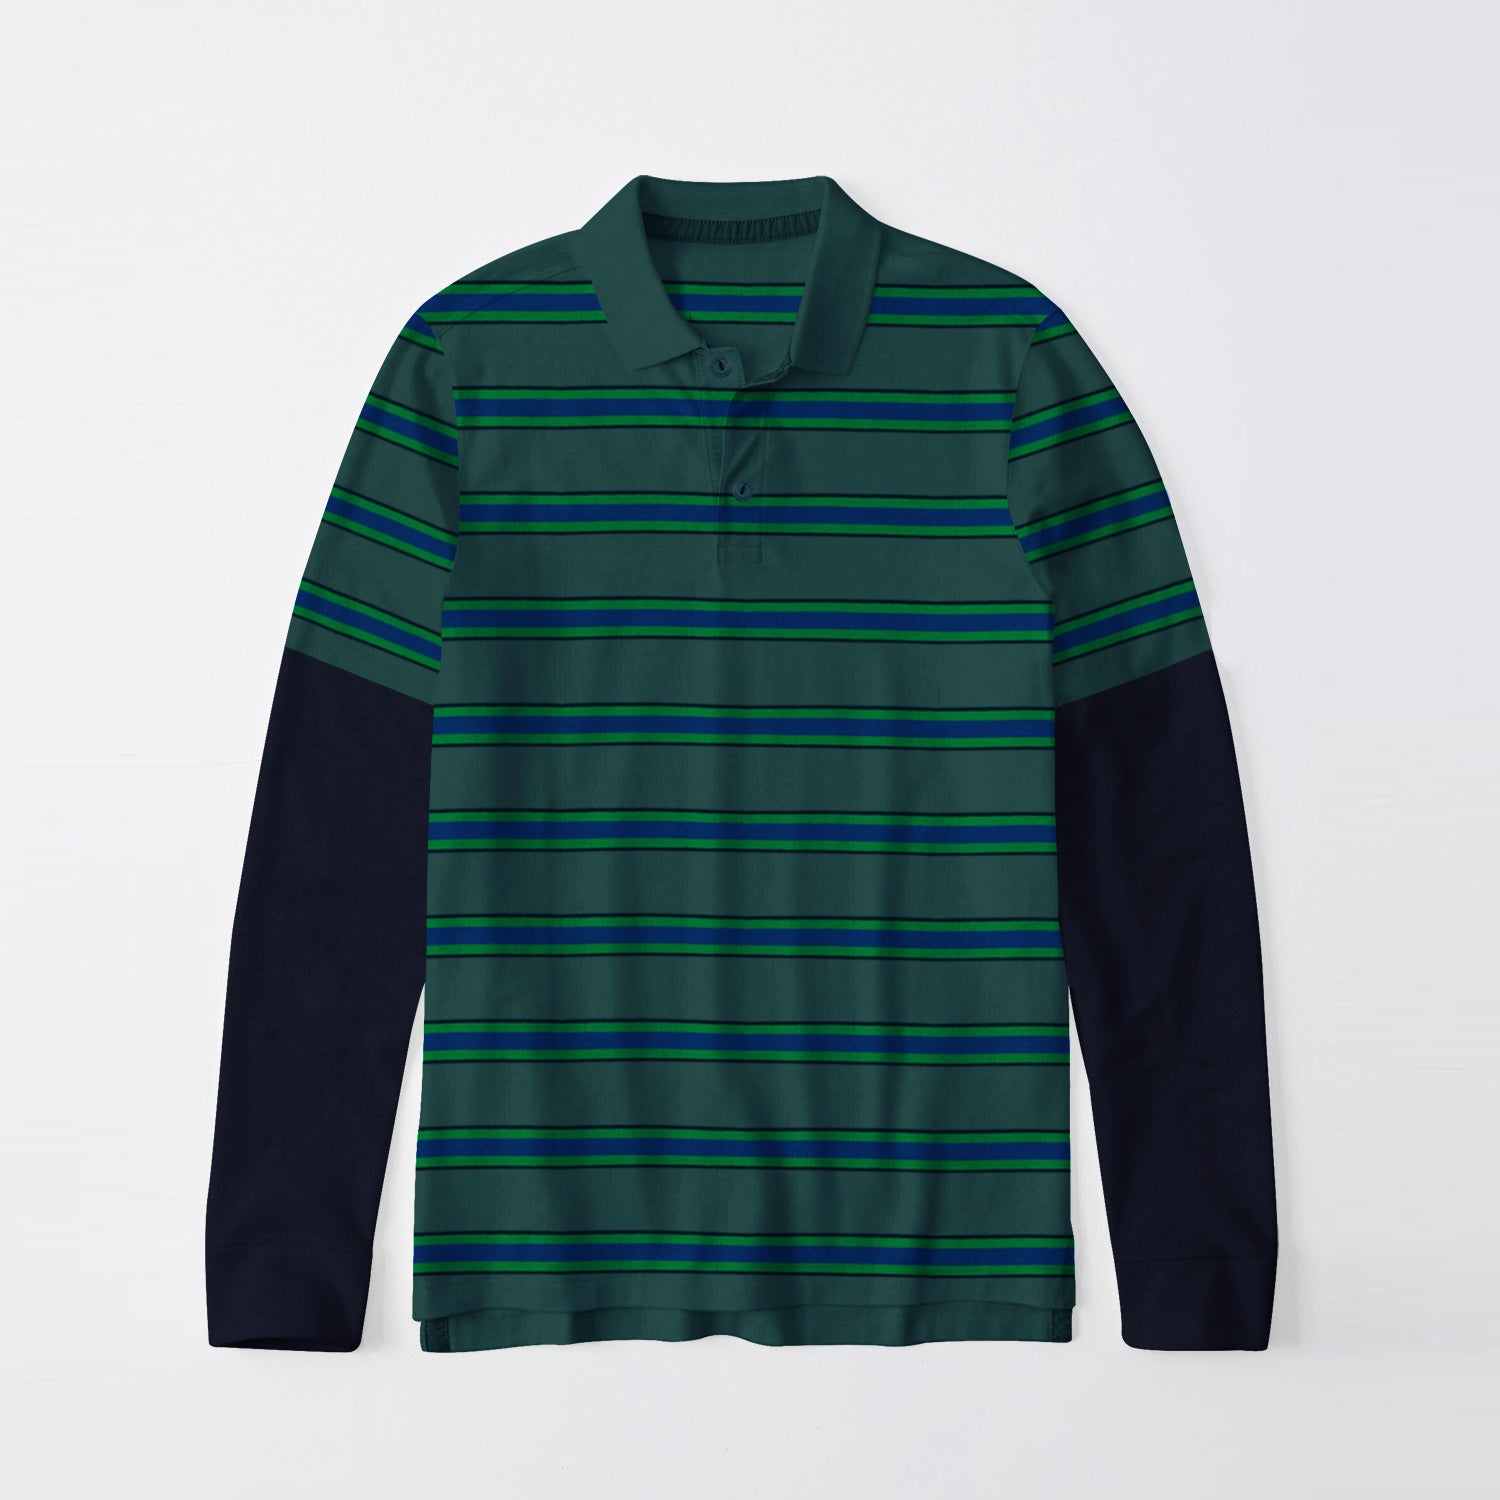 Next Single Jersey Long Sleeve Polo Shirt For Men-Green with Stripe-BE9402